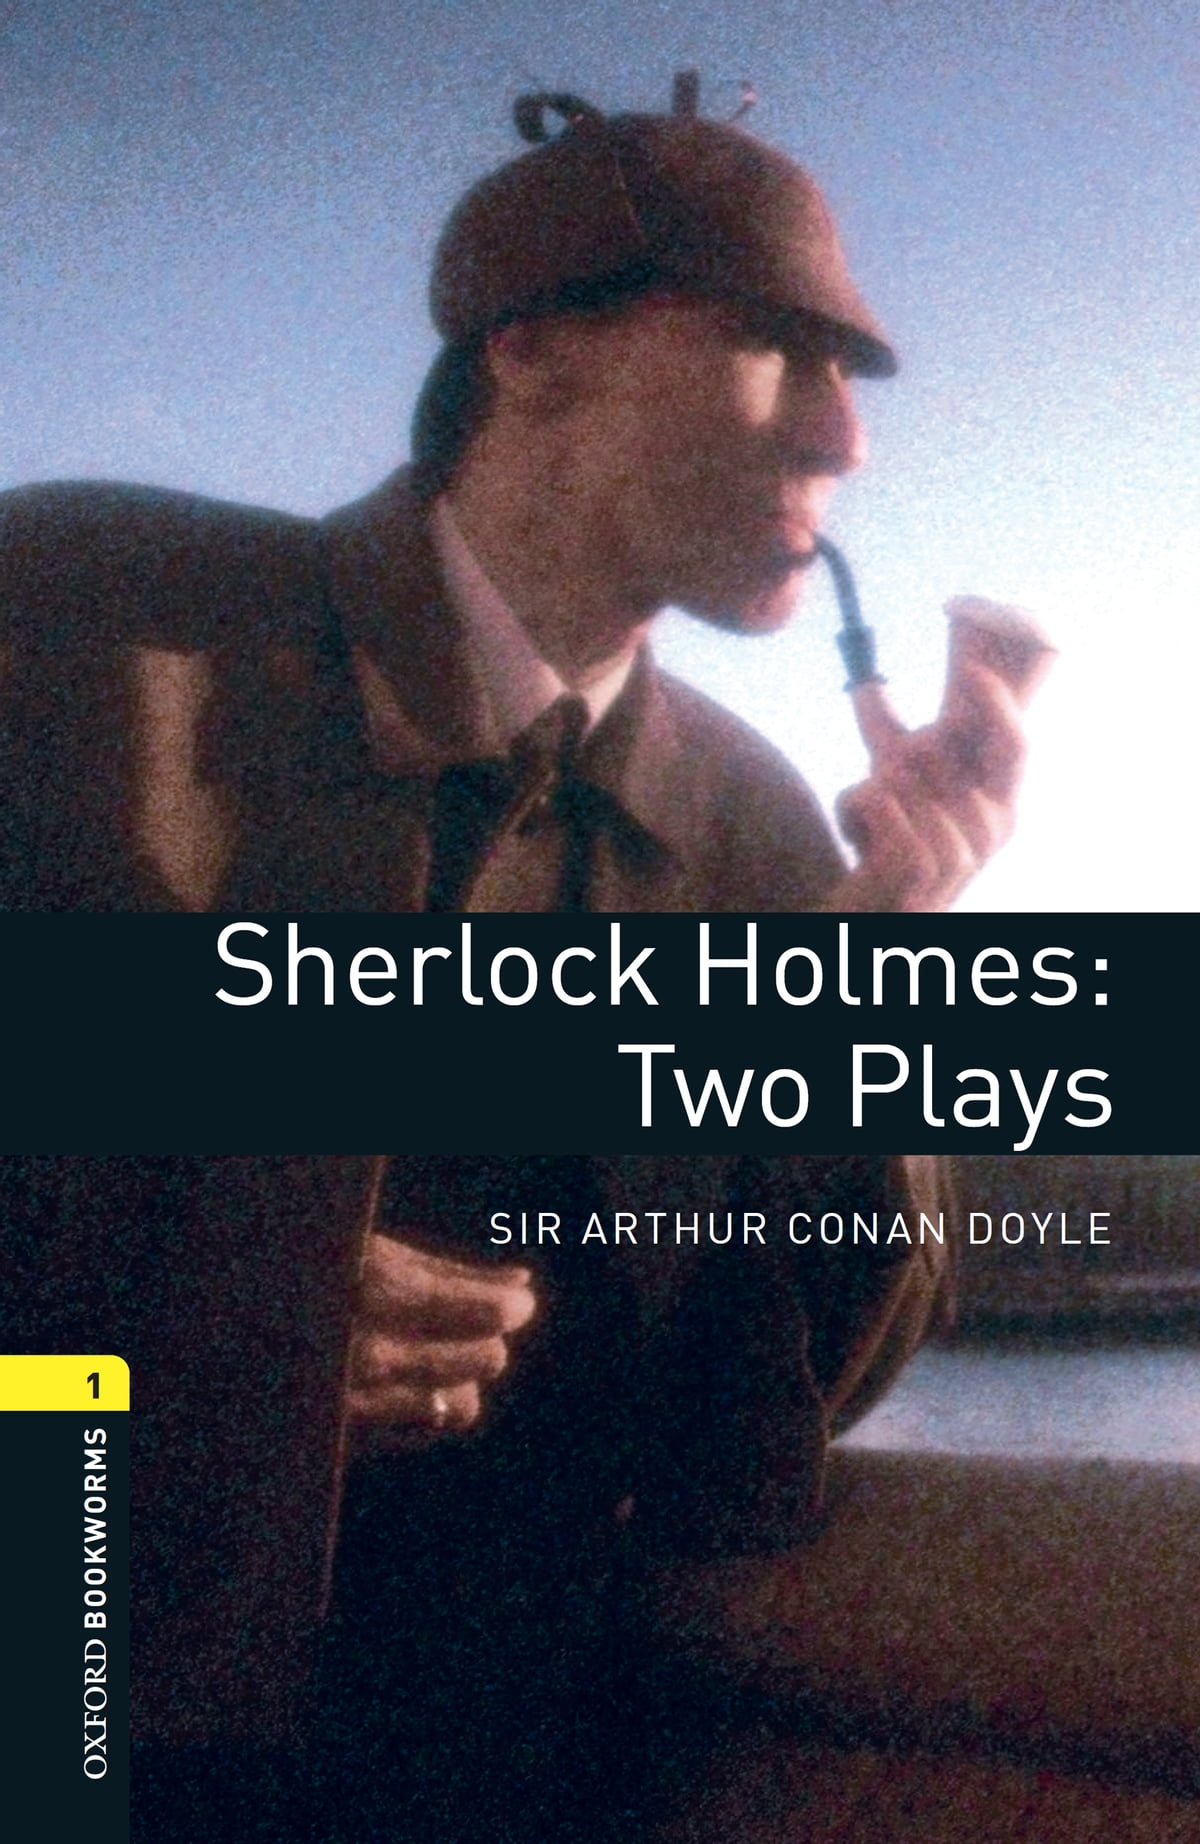 Oxford Bookworms Library Sherlock Holmes Two Plays Level 1 Oxford Bookworms